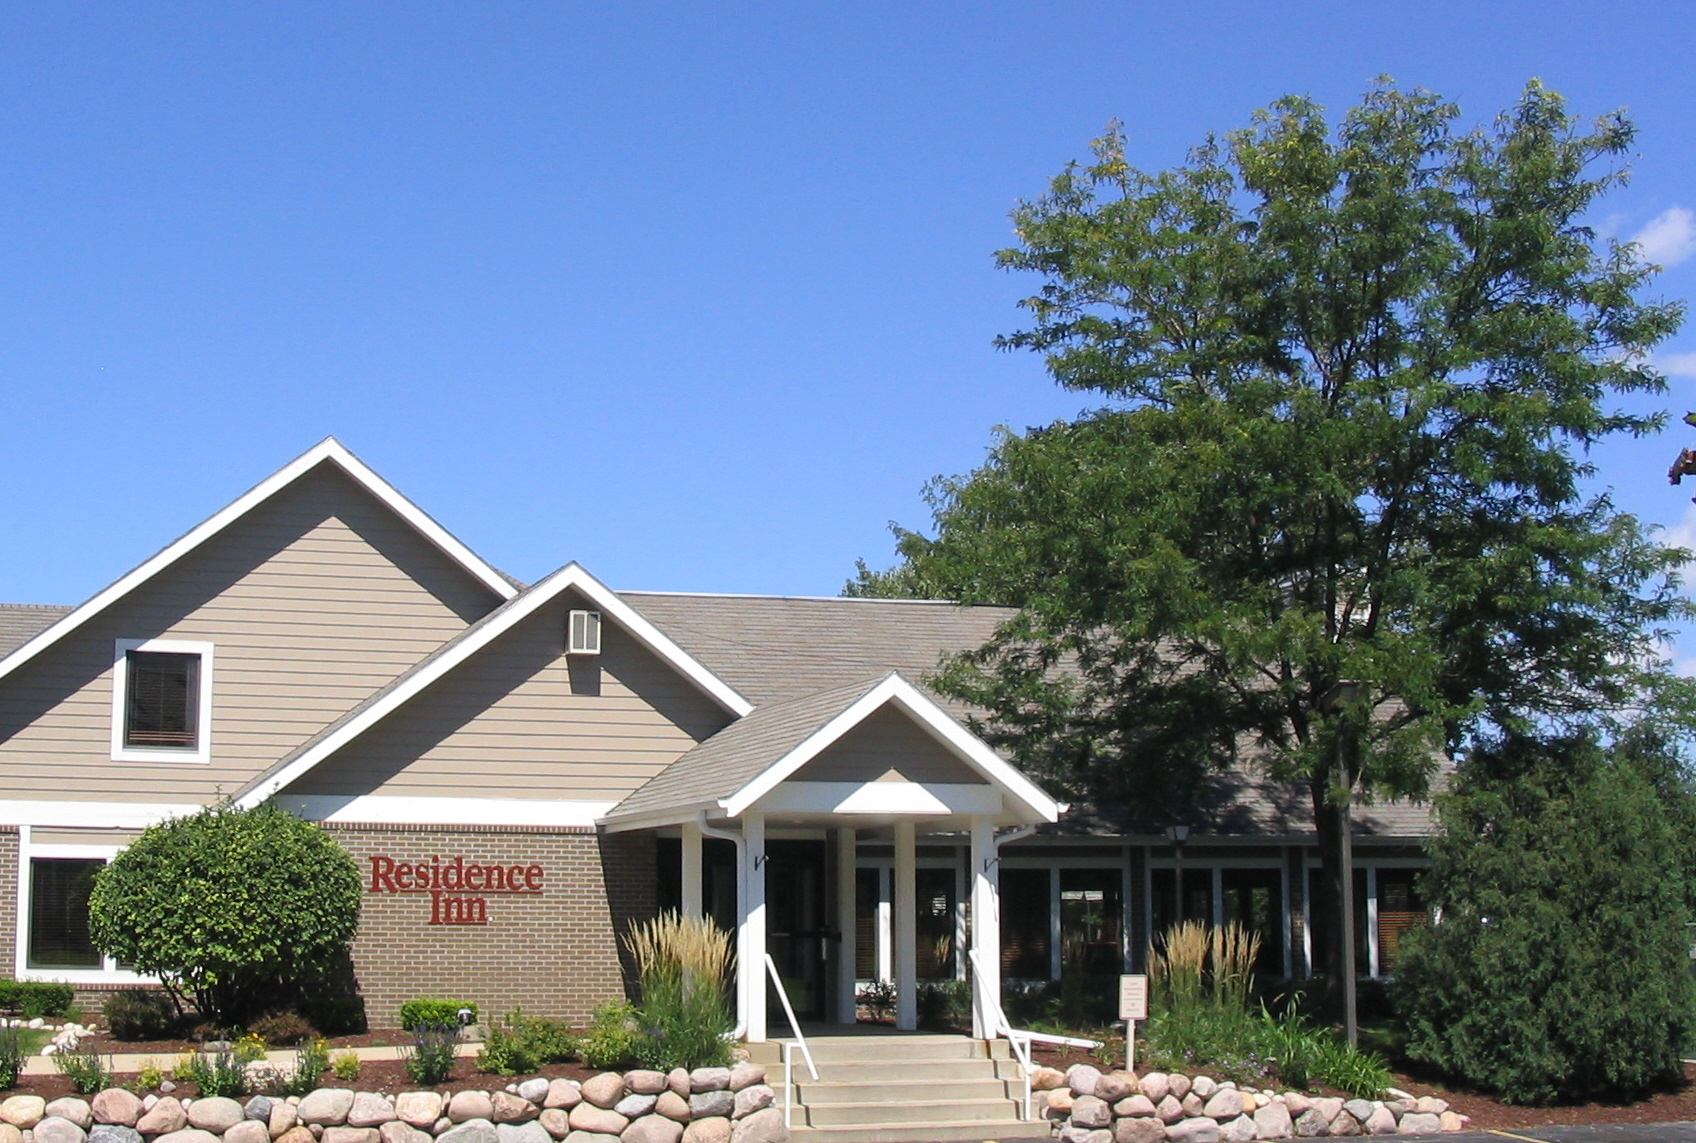 Residence Inn by Marriott Milwaukee - Brookfield